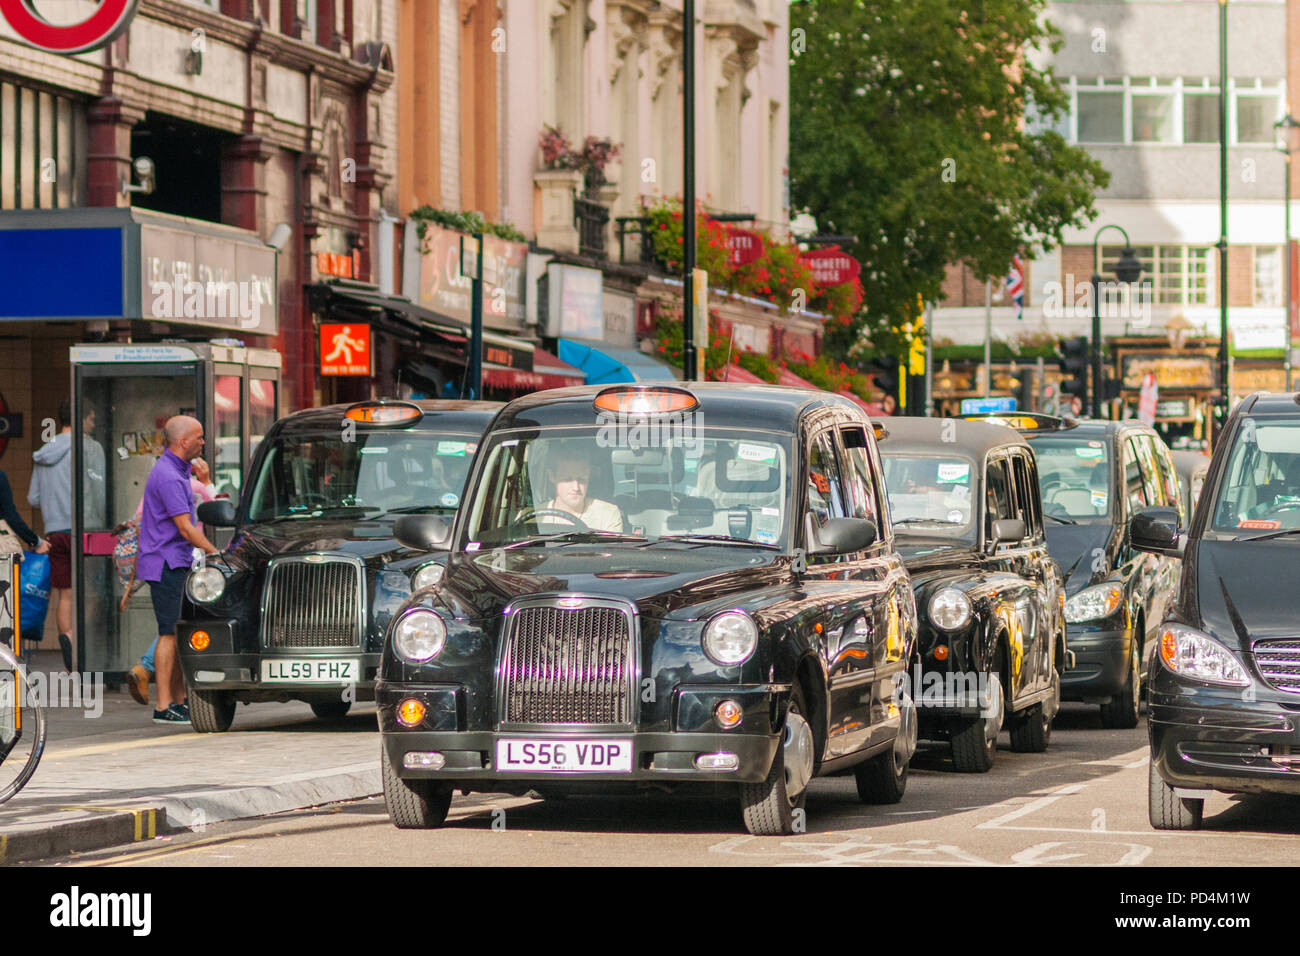 LONDON, UNITED KINGDOM - SEPTEMBER 12, 2012 Black cabs waiting for green signal at a traffic light near Leicester Square in London. - Stock Image